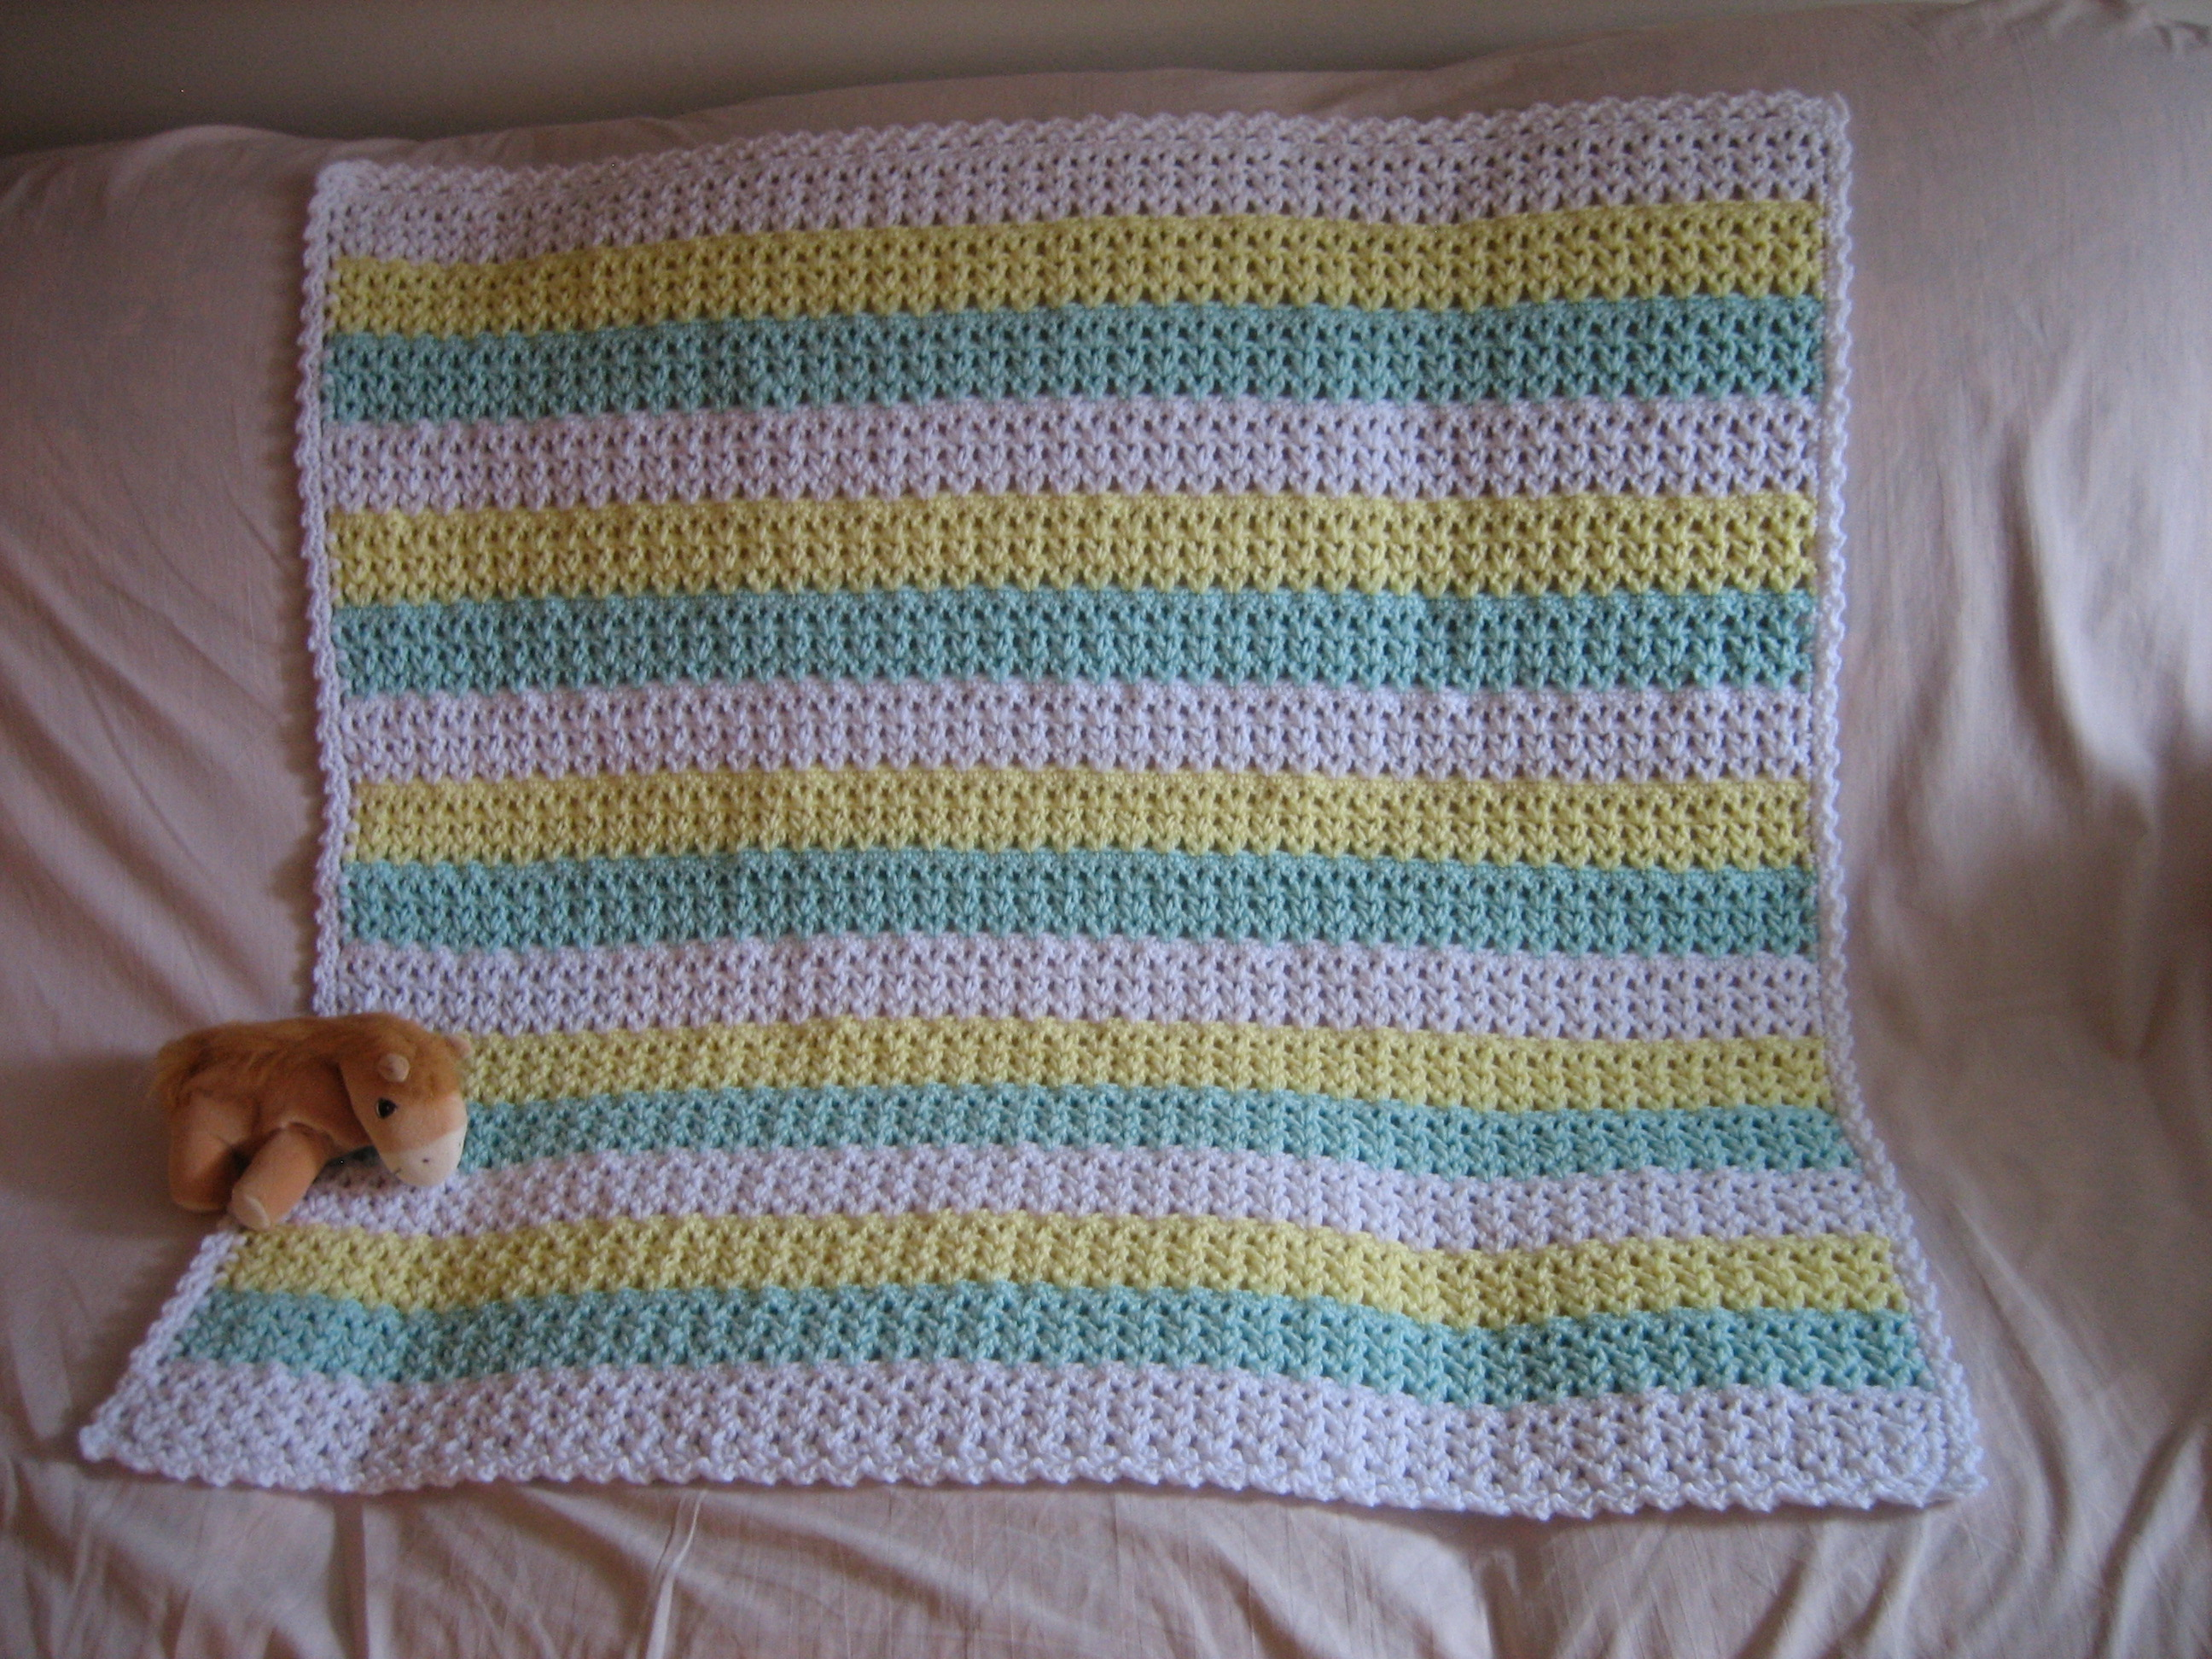 Easy Peasy Baby Blanket to Crochet - Yahoo! Voices - voices.yahoo.com